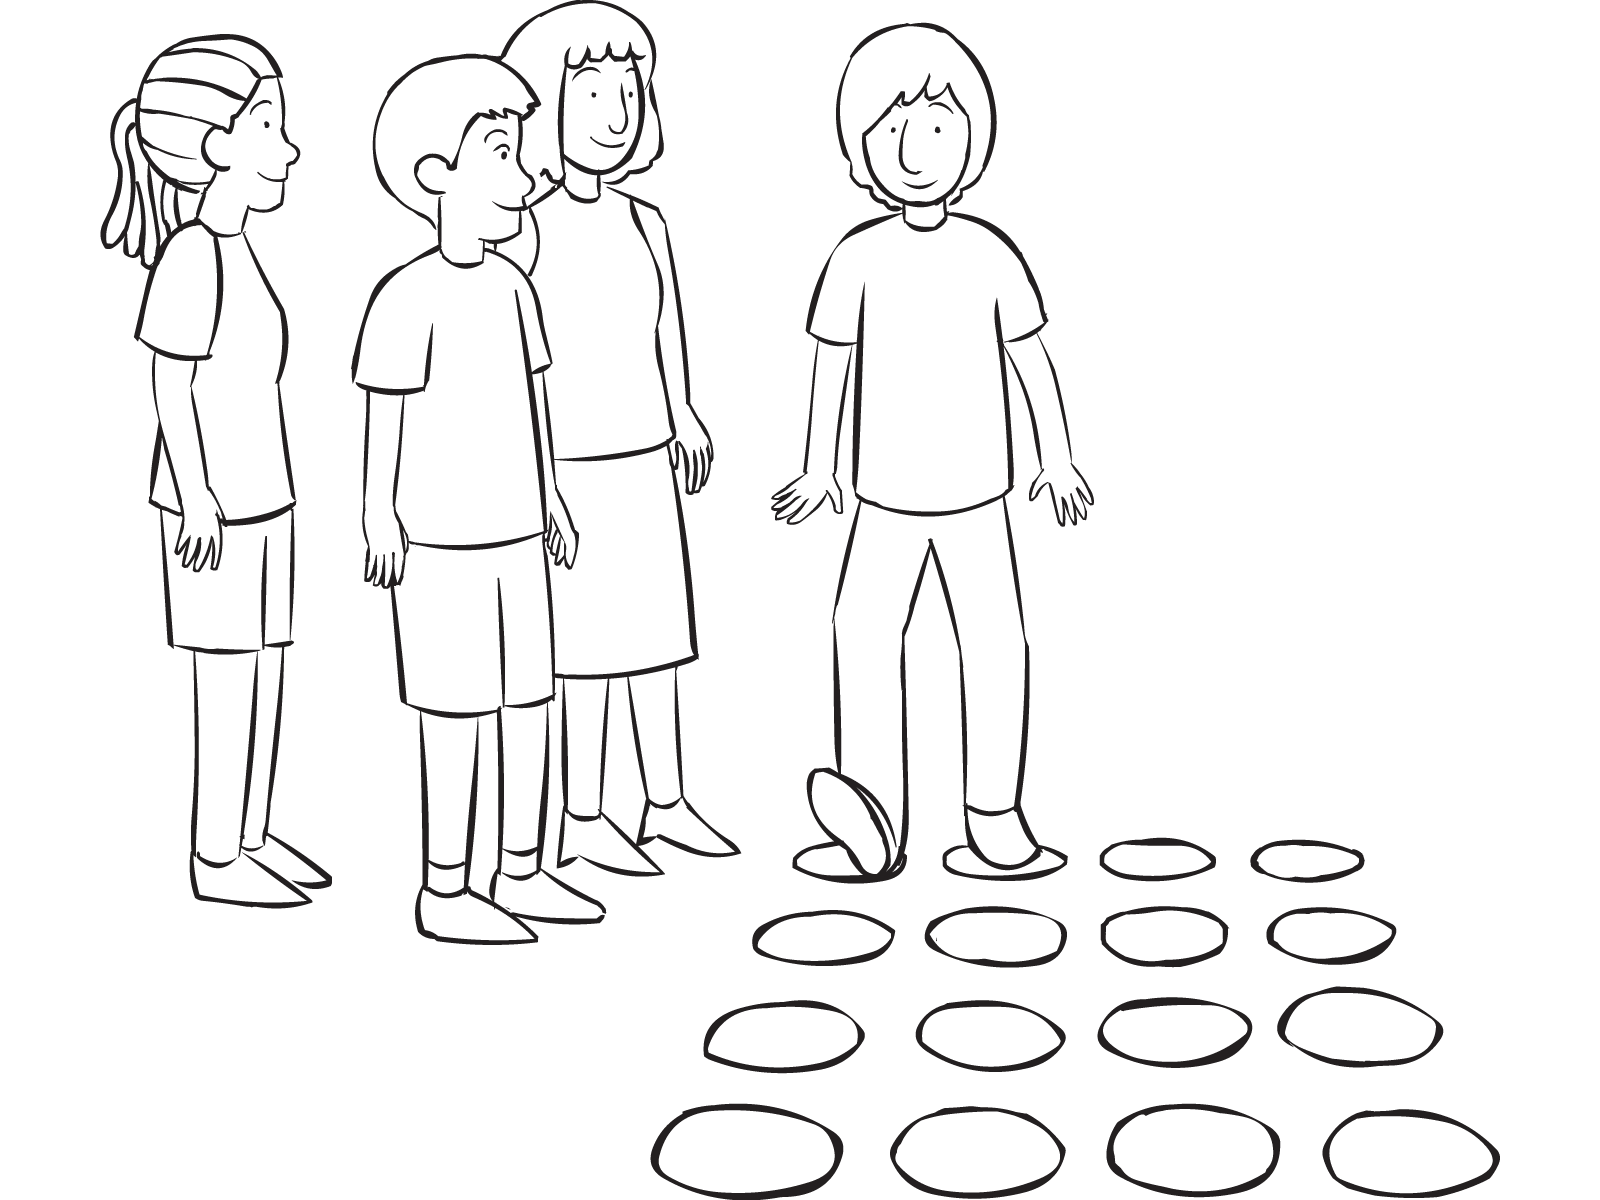 The maze, with small group walking through a series of